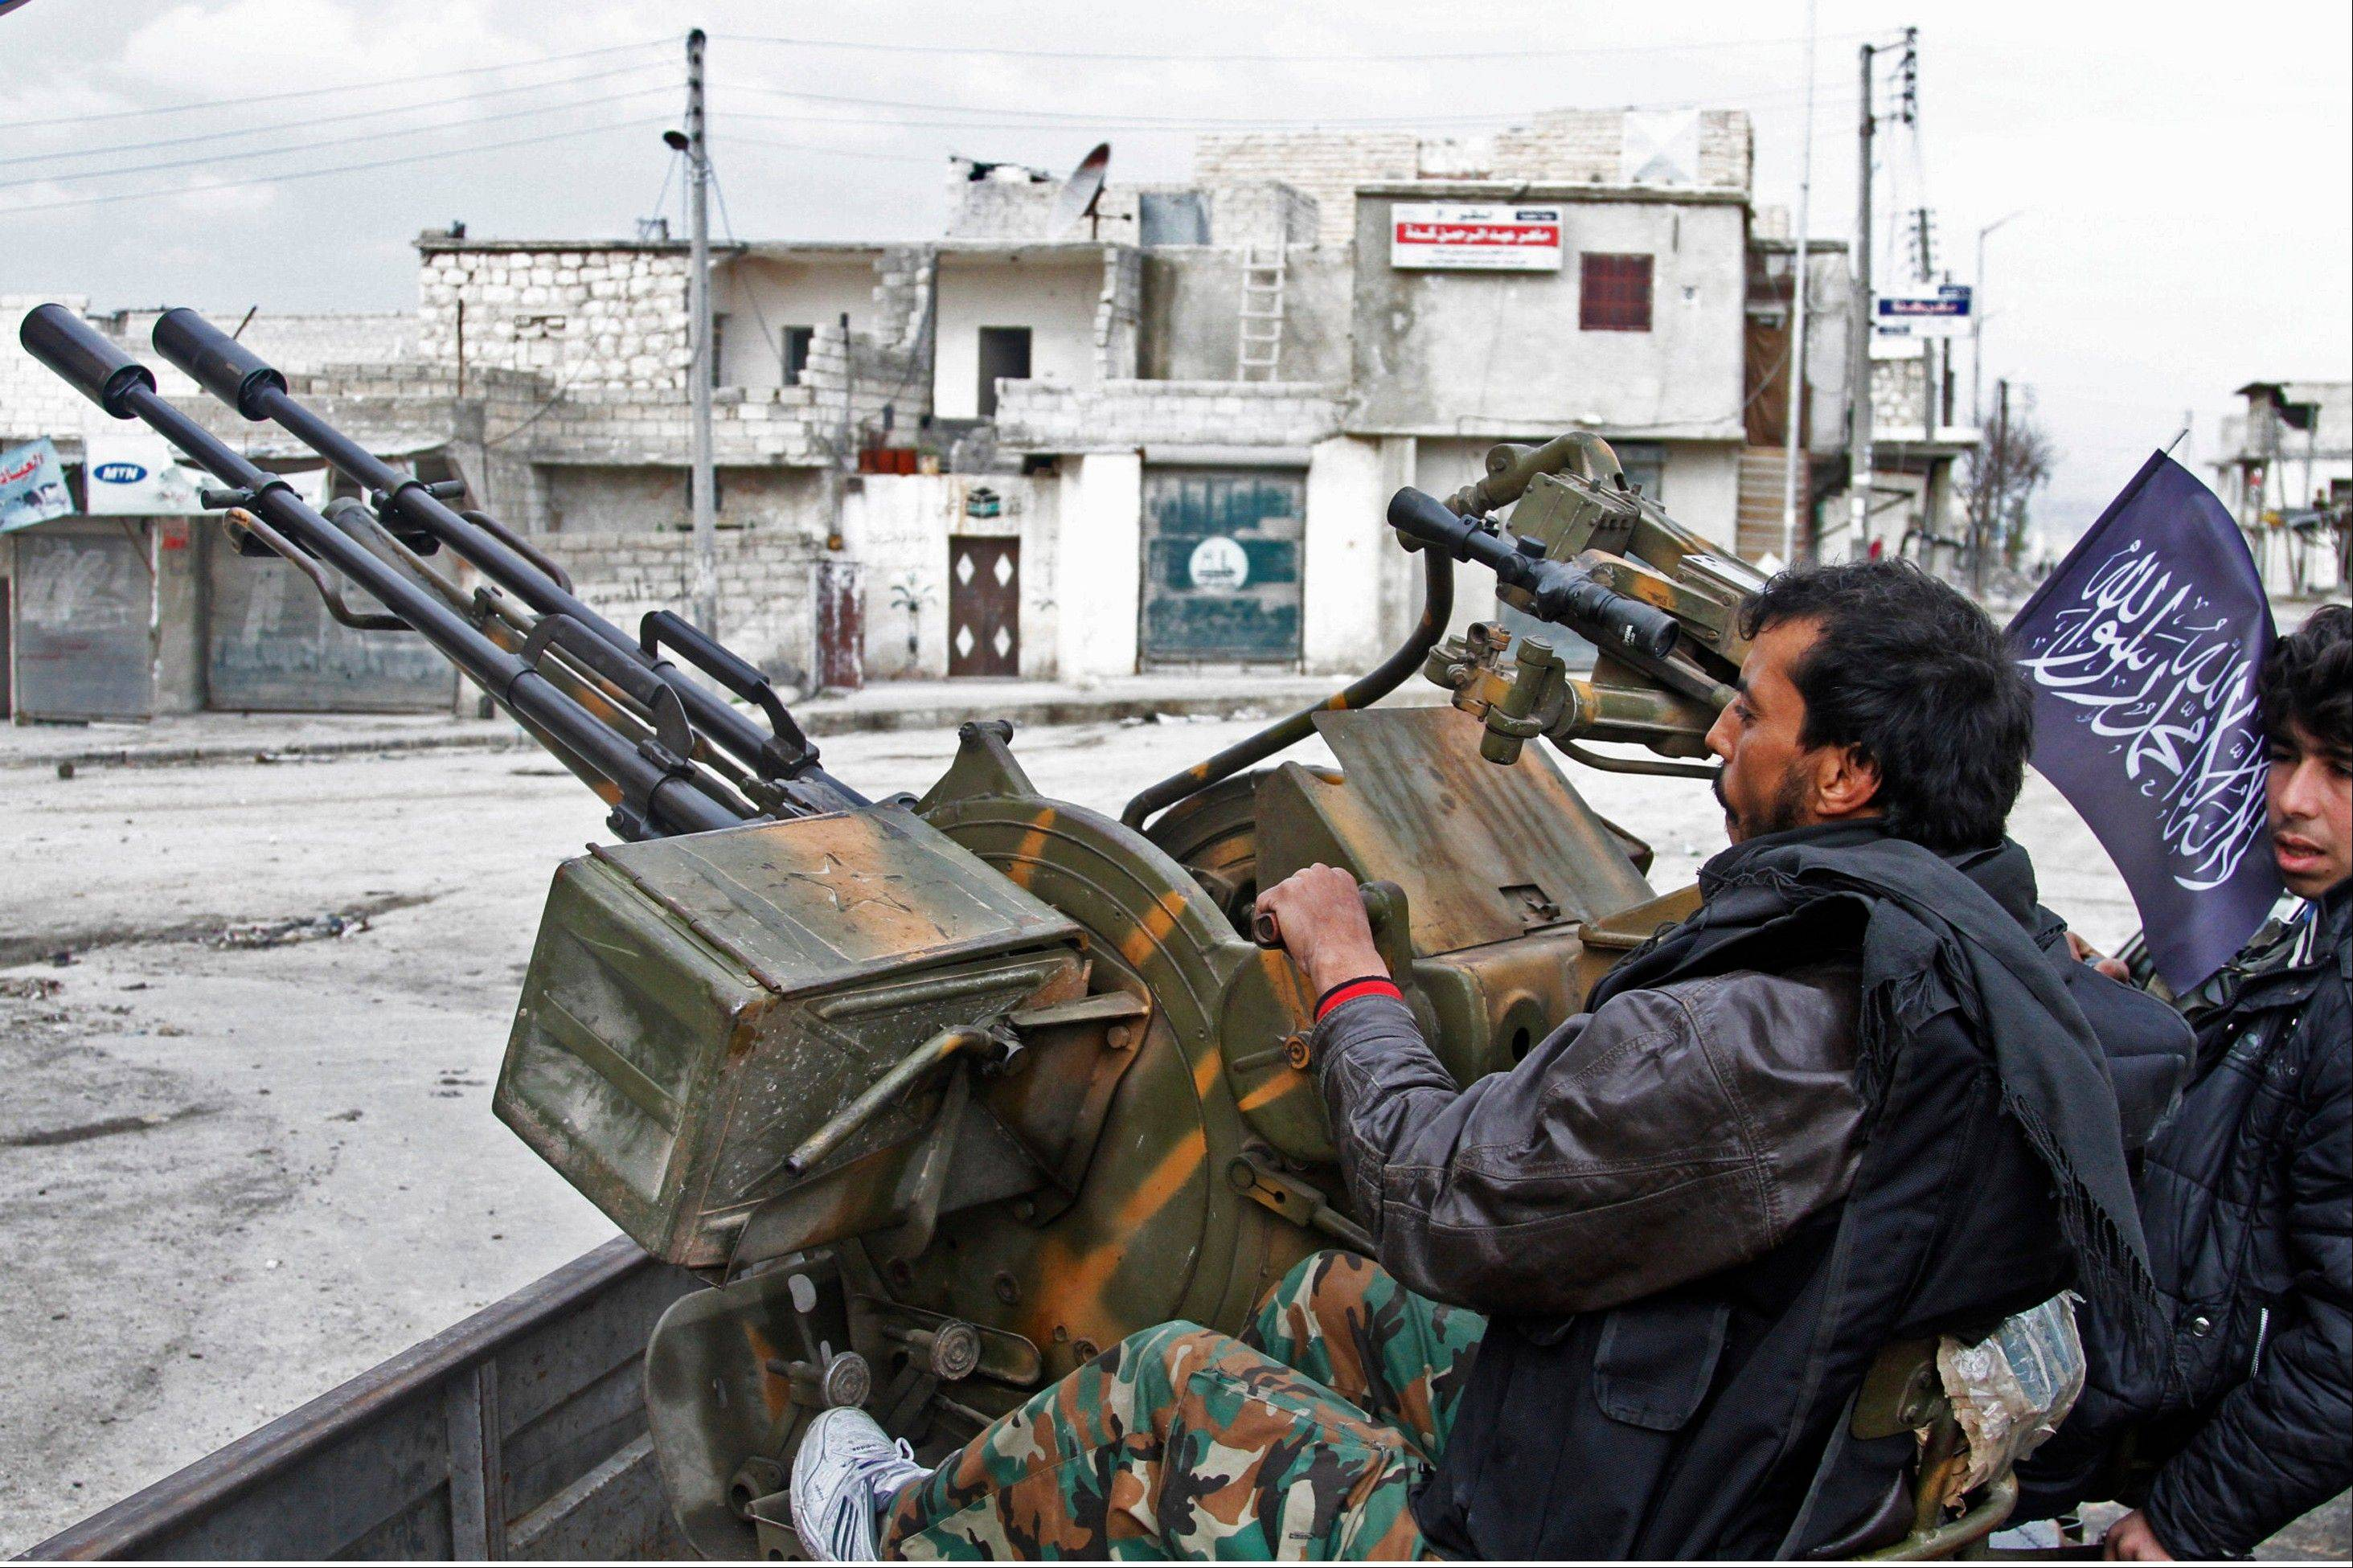 Free Syrian Army fighters sit behind their antiaircraft machine gun in Aleppo, Syria, on Friday. Syrian rebels brought their fight within a mile of the heart of Damascus on Friday, seizing army checkpoints and cutting a key highway with a row of burning tires as they pressed their campaign for the heavily guarded capital, considered the likely endgame in the nearly 2-year-old civil war.